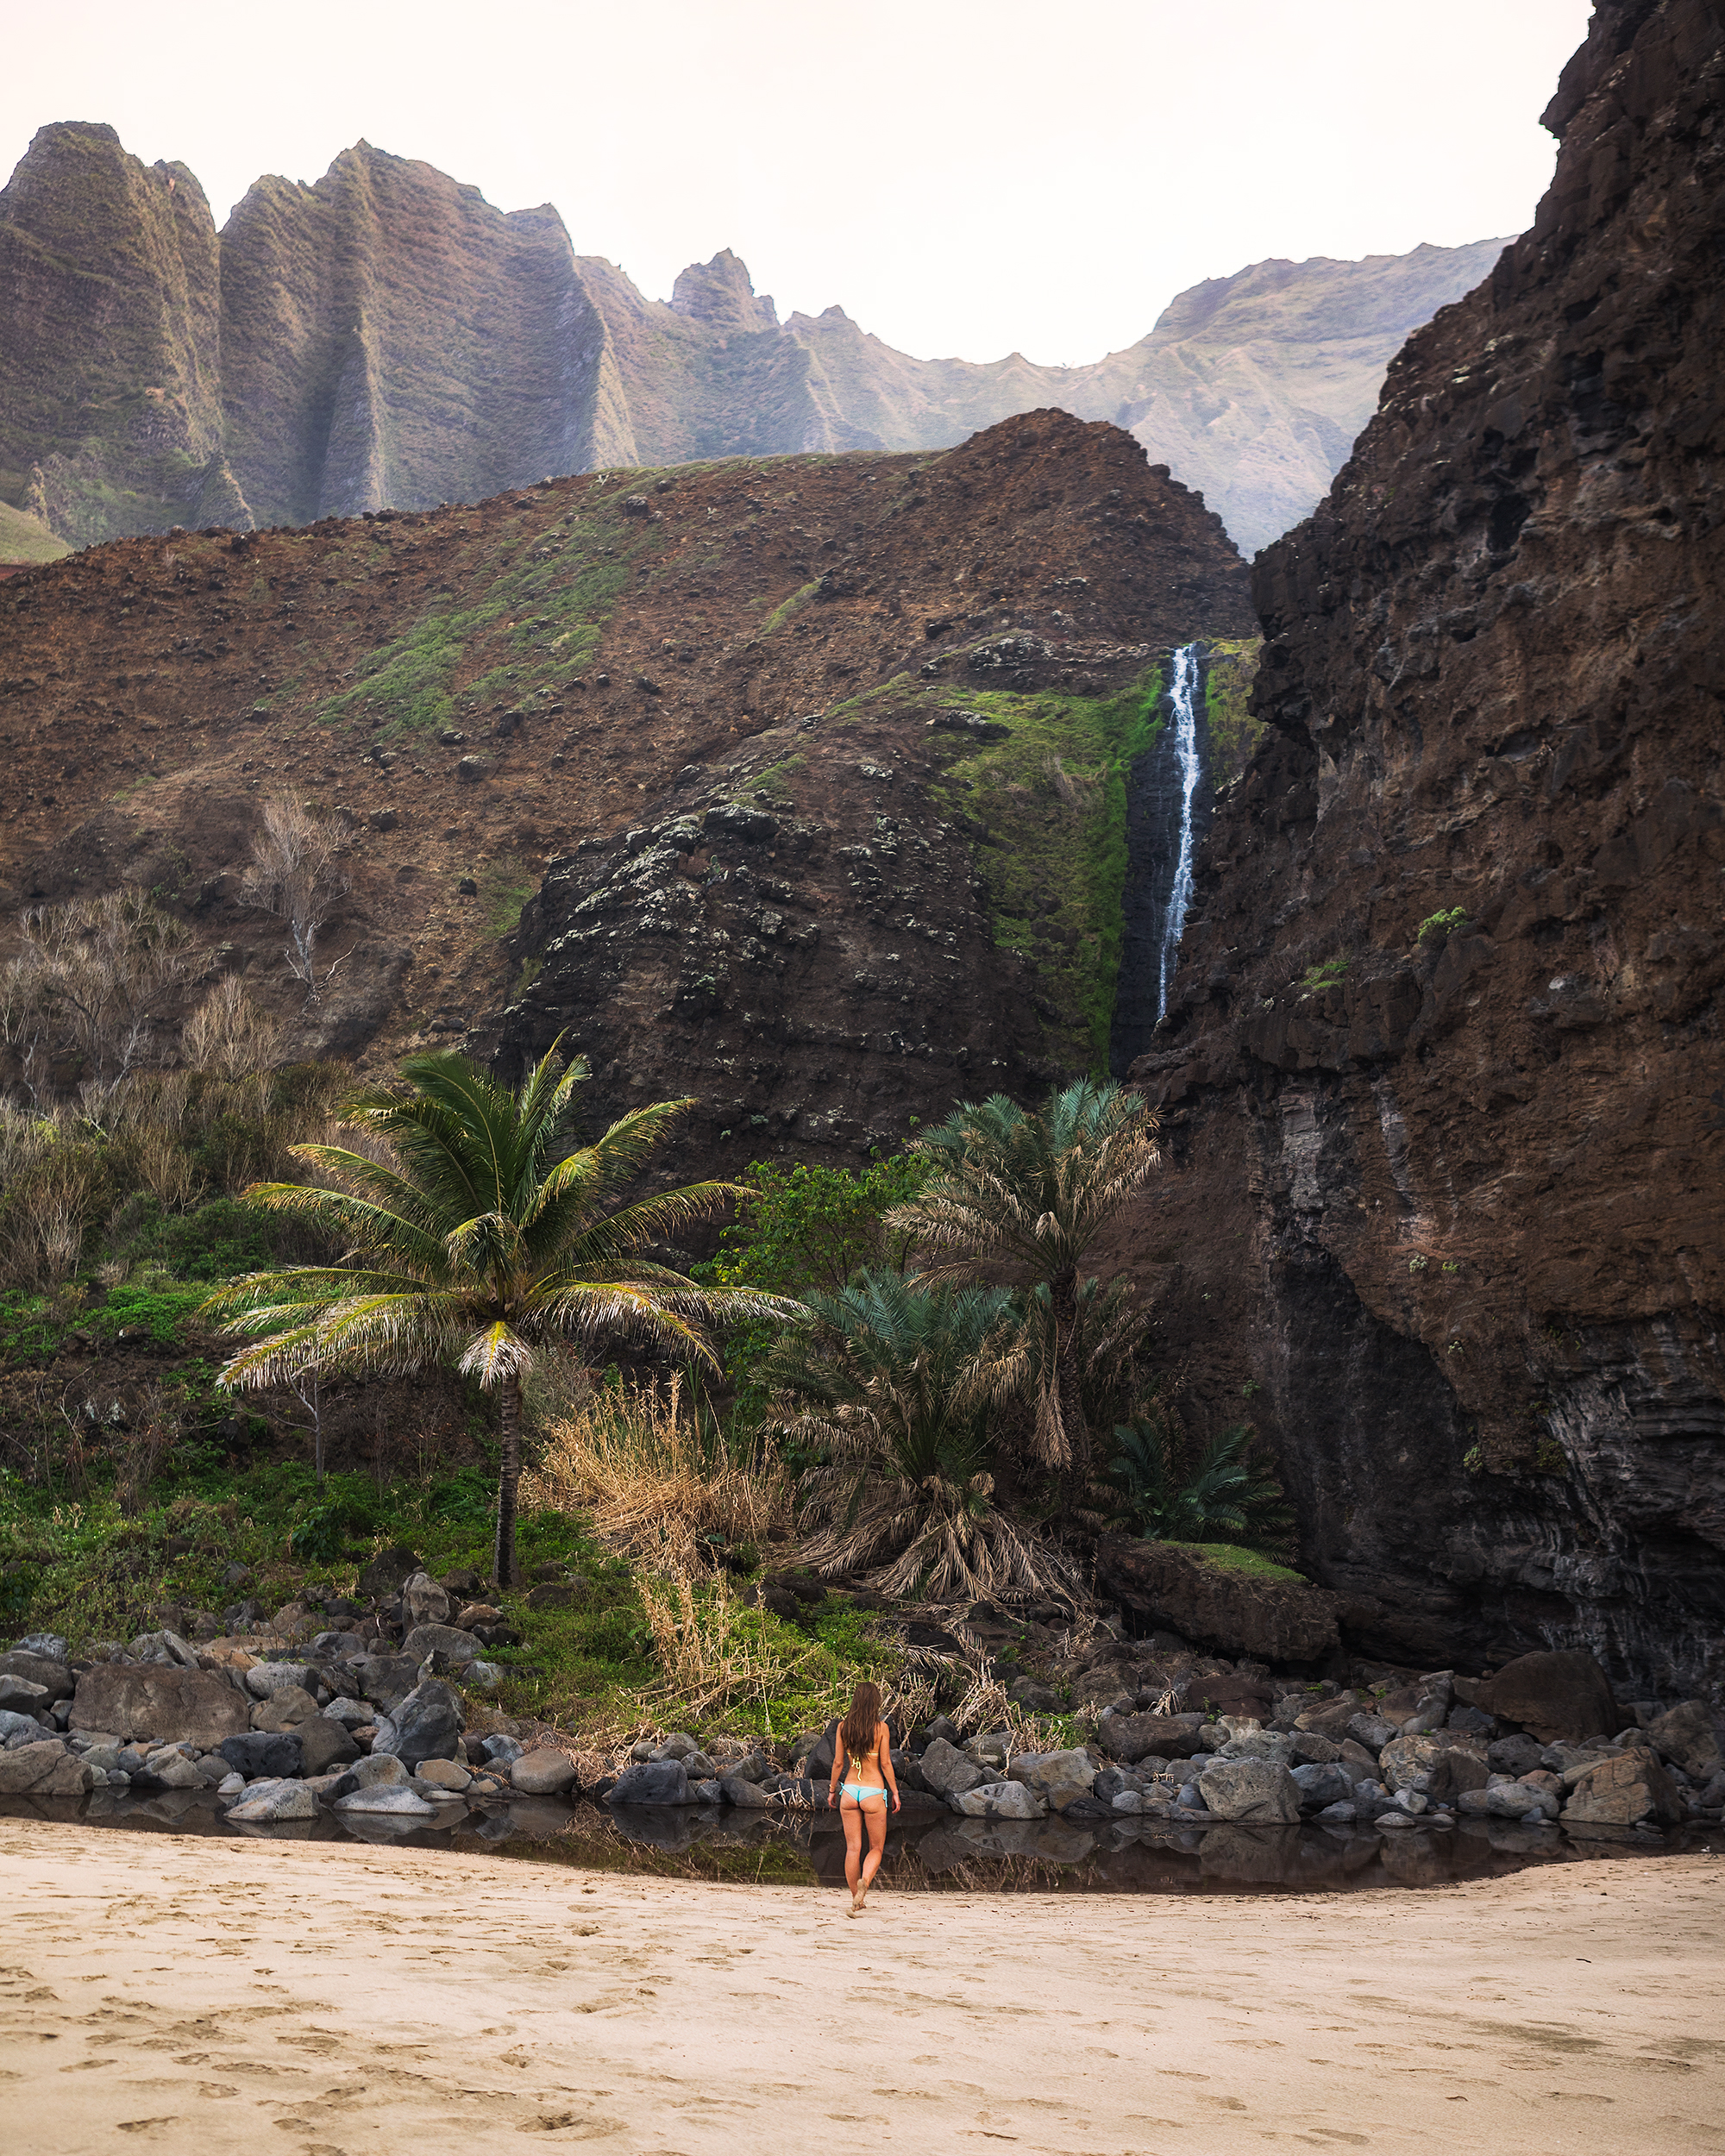 Andrea-at-the-Waterfall-at-Kalalau-Beach-by-Michael-Matti.jpg